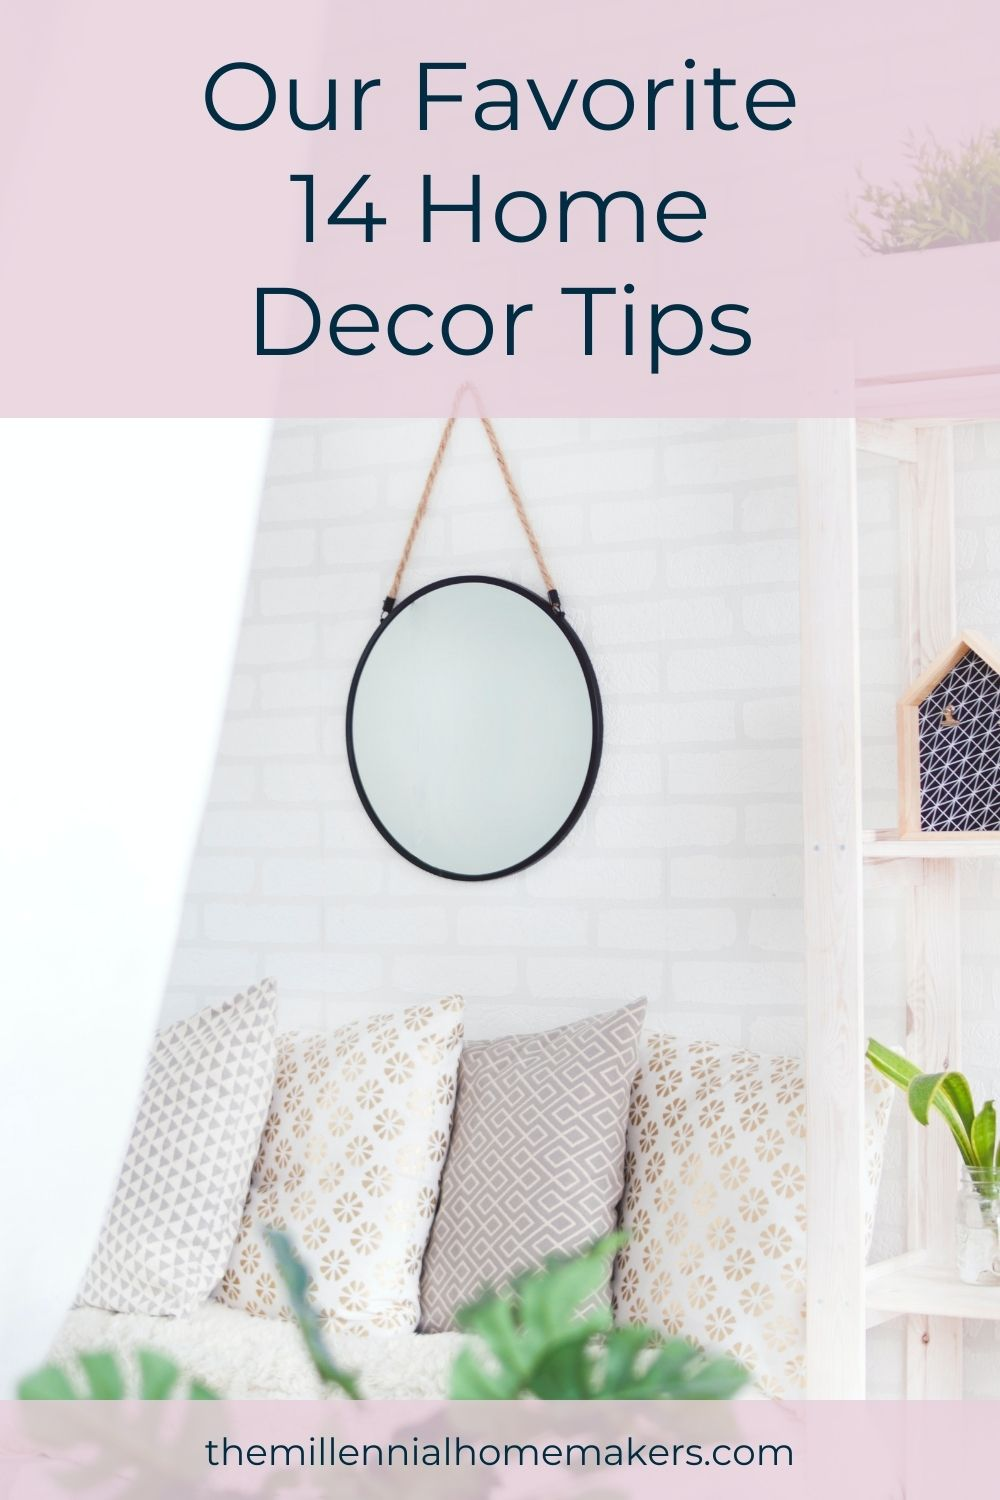 round mirror hanging over an assortment of throw pillows